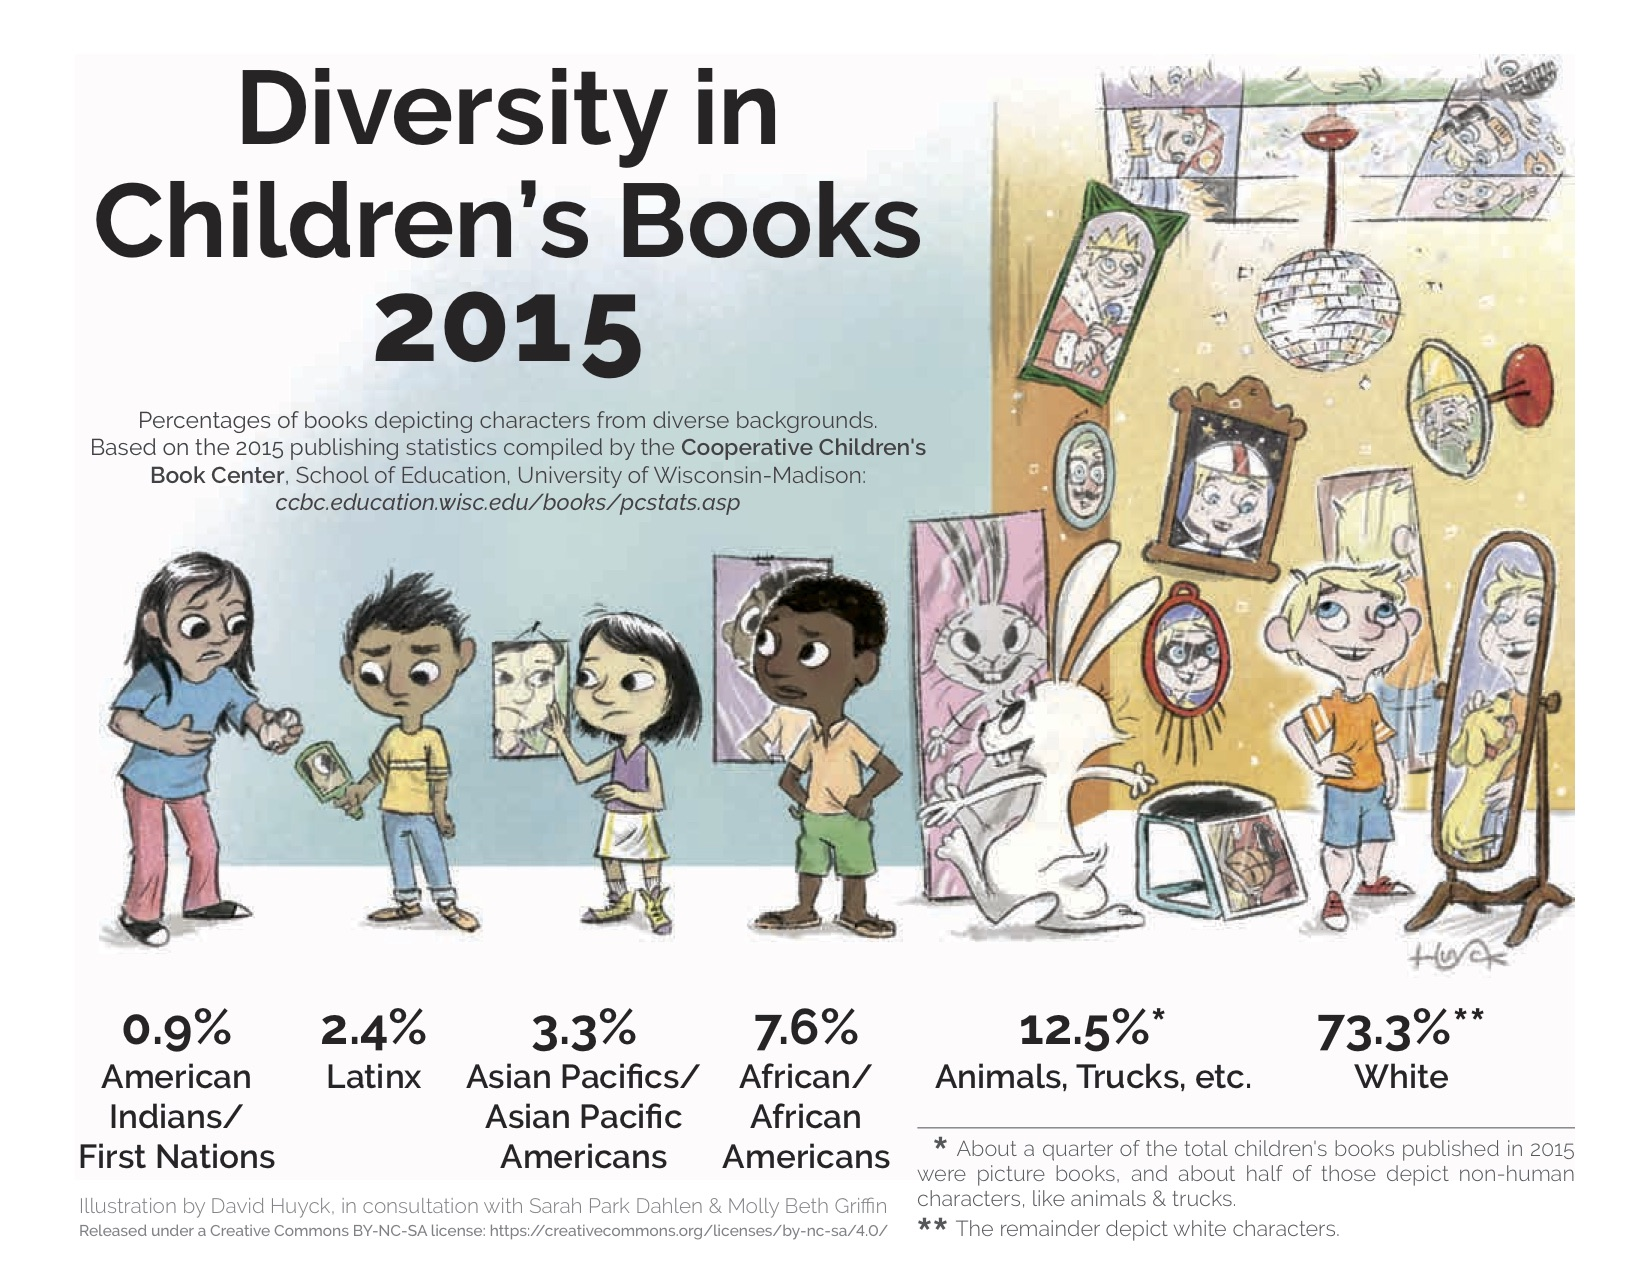 diversityinchildrensbooks2015_f-copy